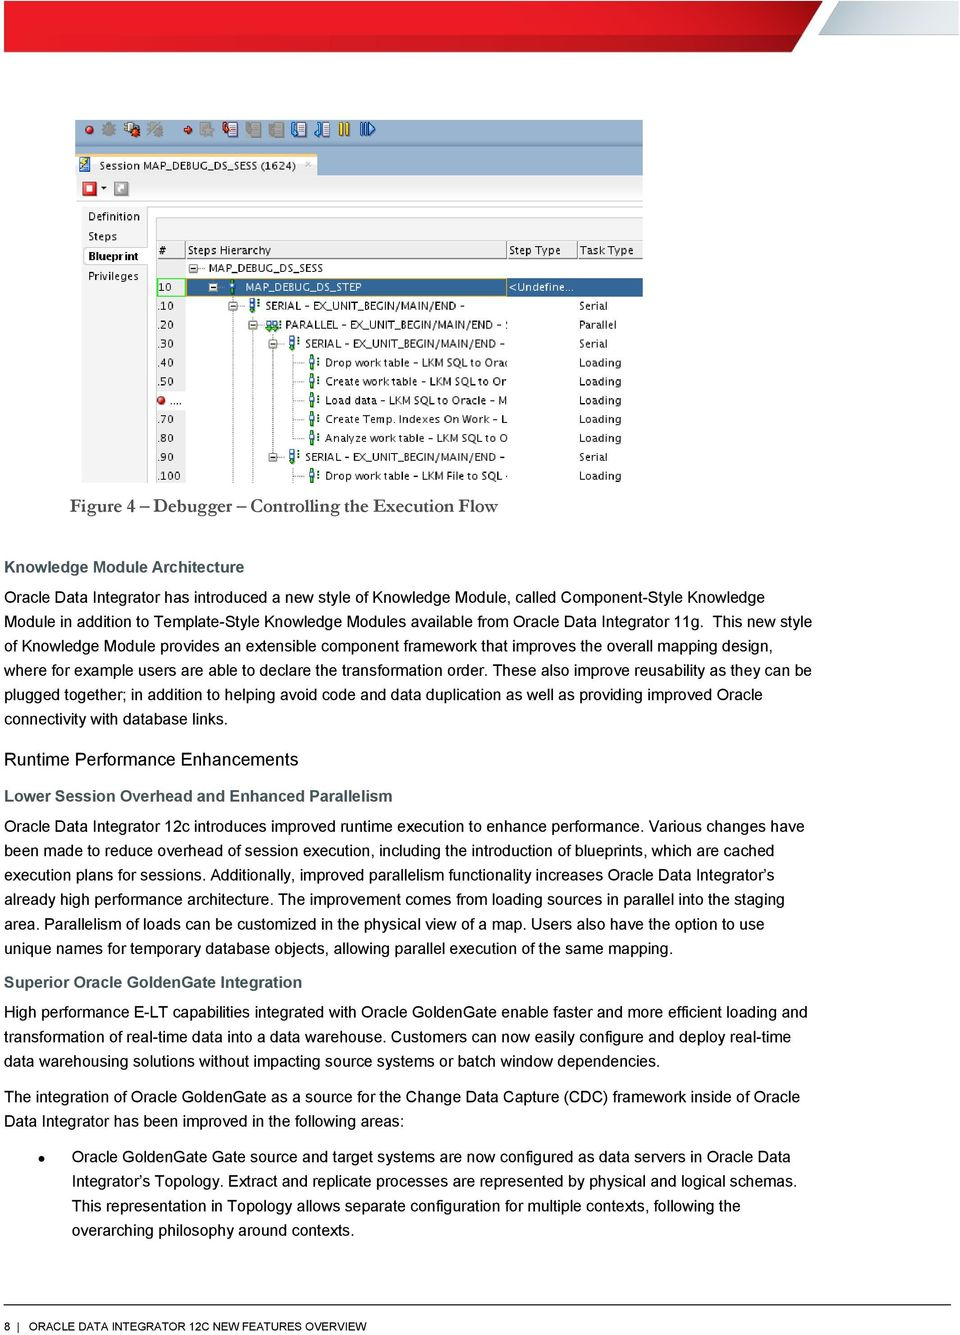 Oracle data integrator 12c new features overview advancing big data this new style of knowledge module provides an extensible component framework that improves the overall mapping malvernweather Image collections